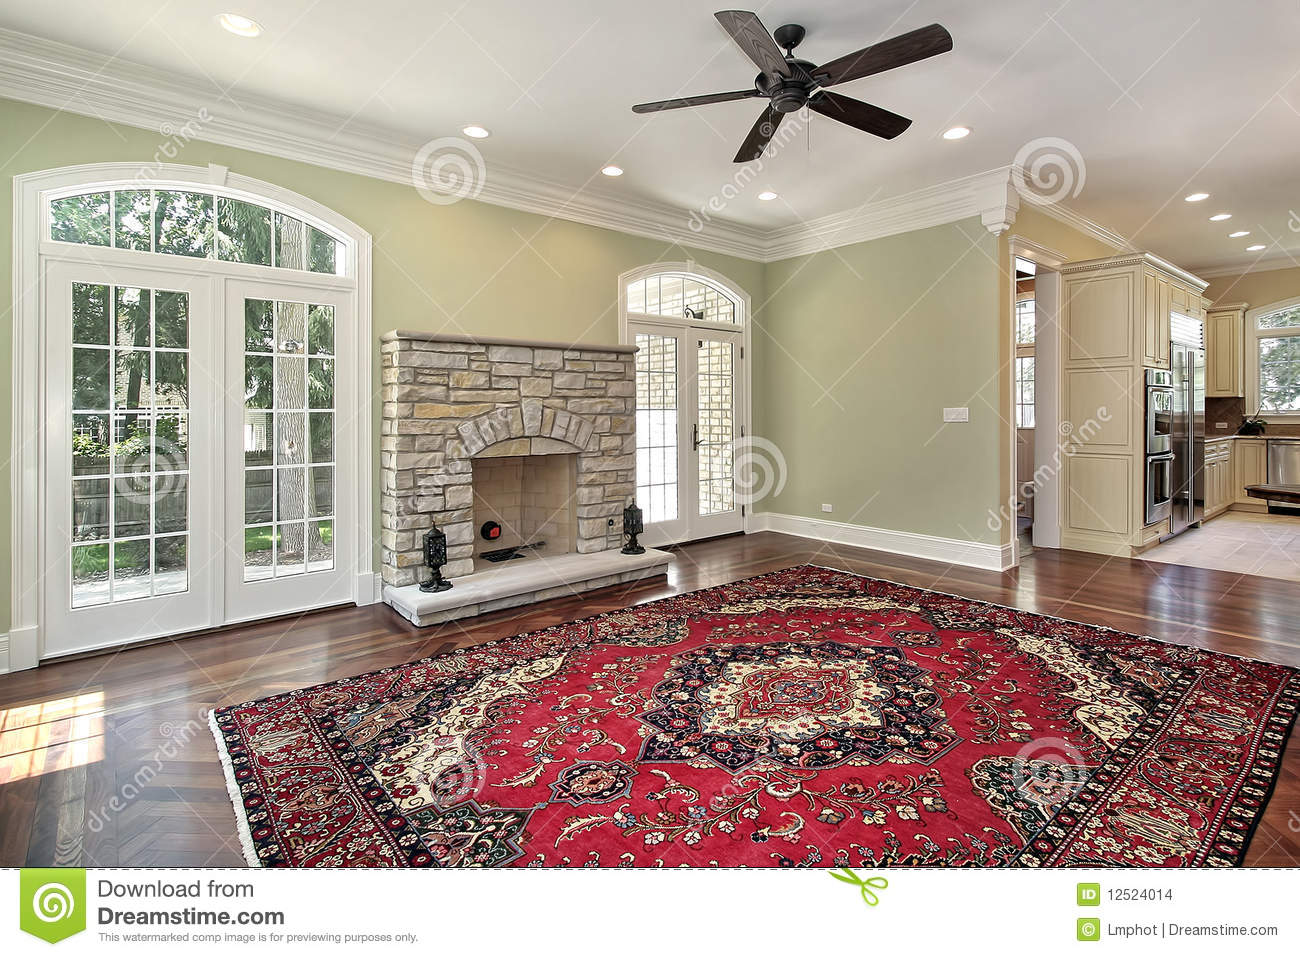 Living Room With Stone Fireplace living room with stone fireplace stock images - image: 12524014